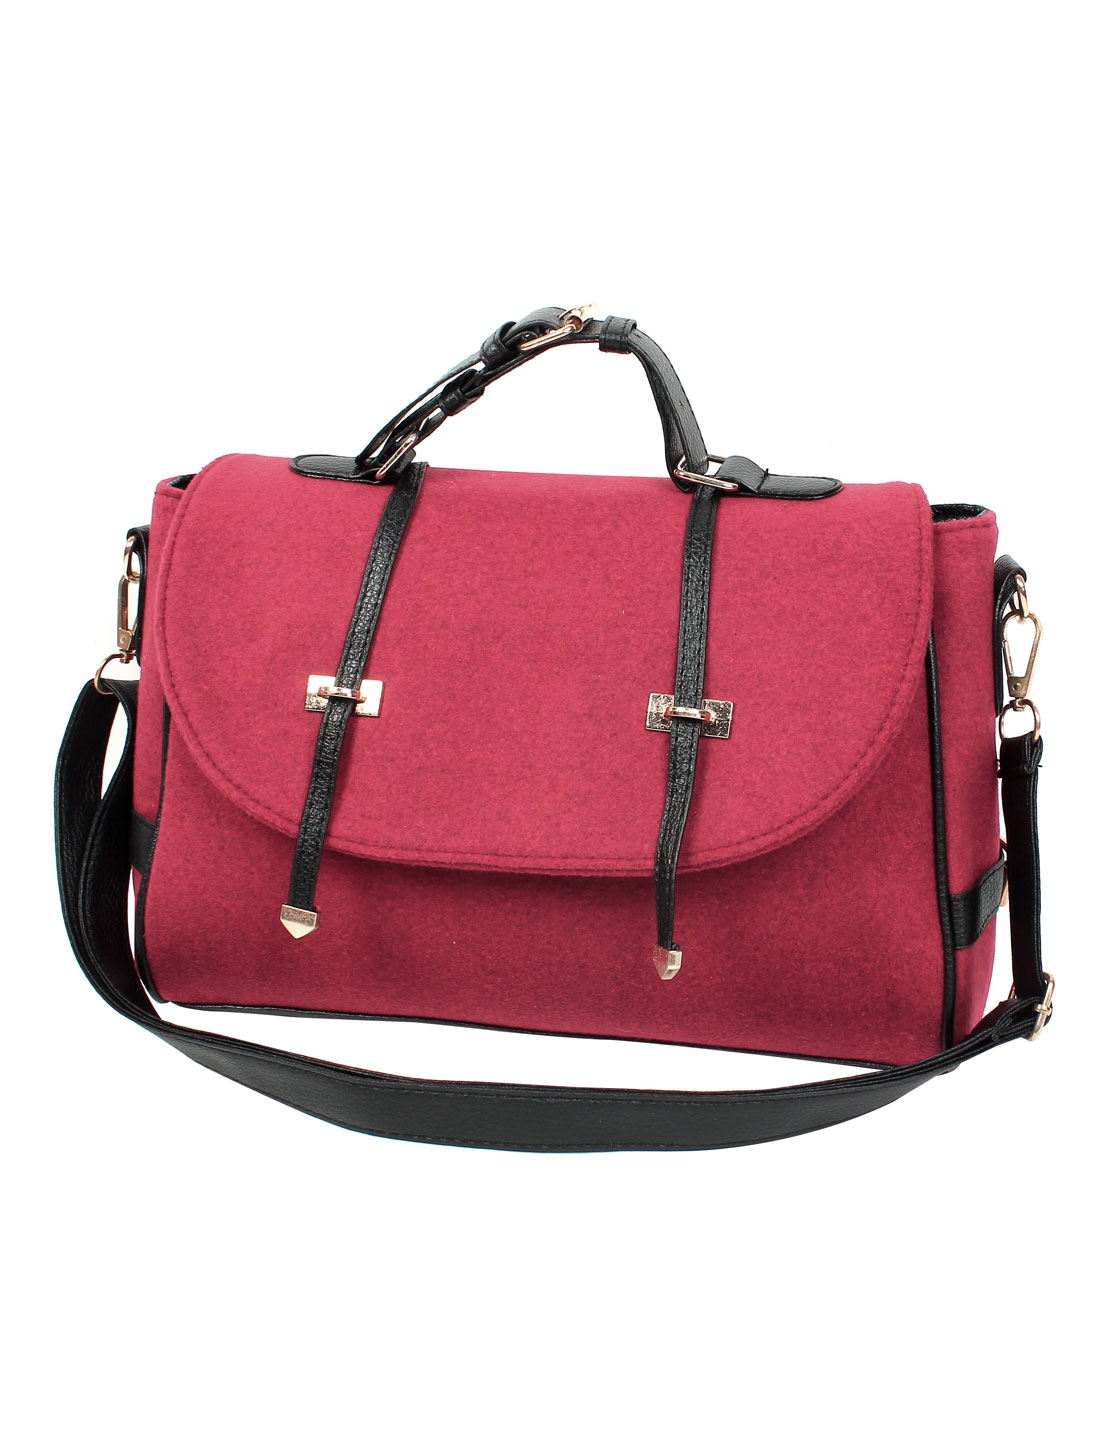 Fashion Nubuck Leather New Women Handbag Tote Shoulder Messenger Hobo Bag Red